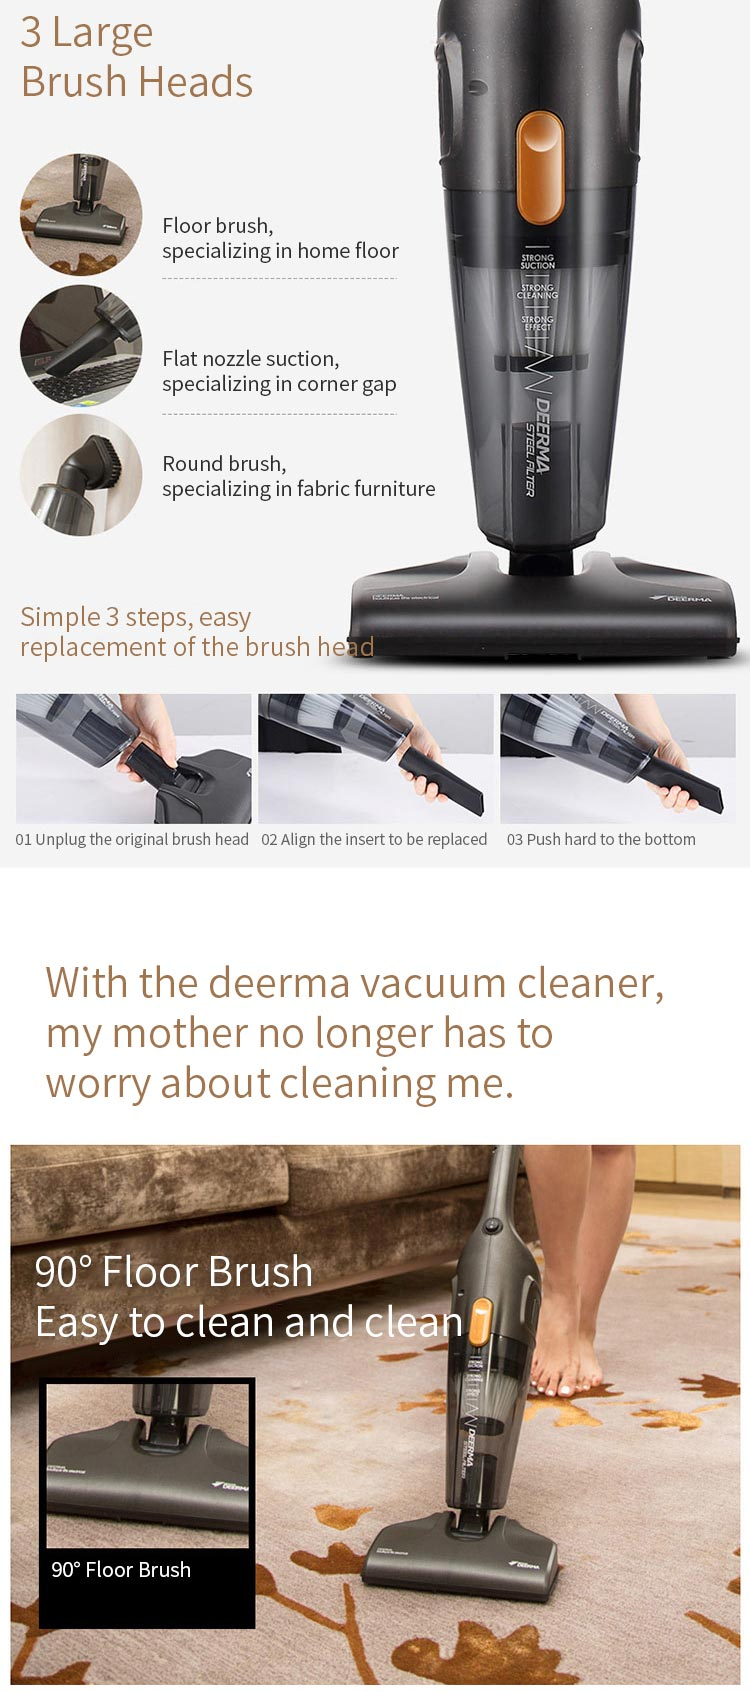 deerma dx115c mini vacuum cleaner for sale